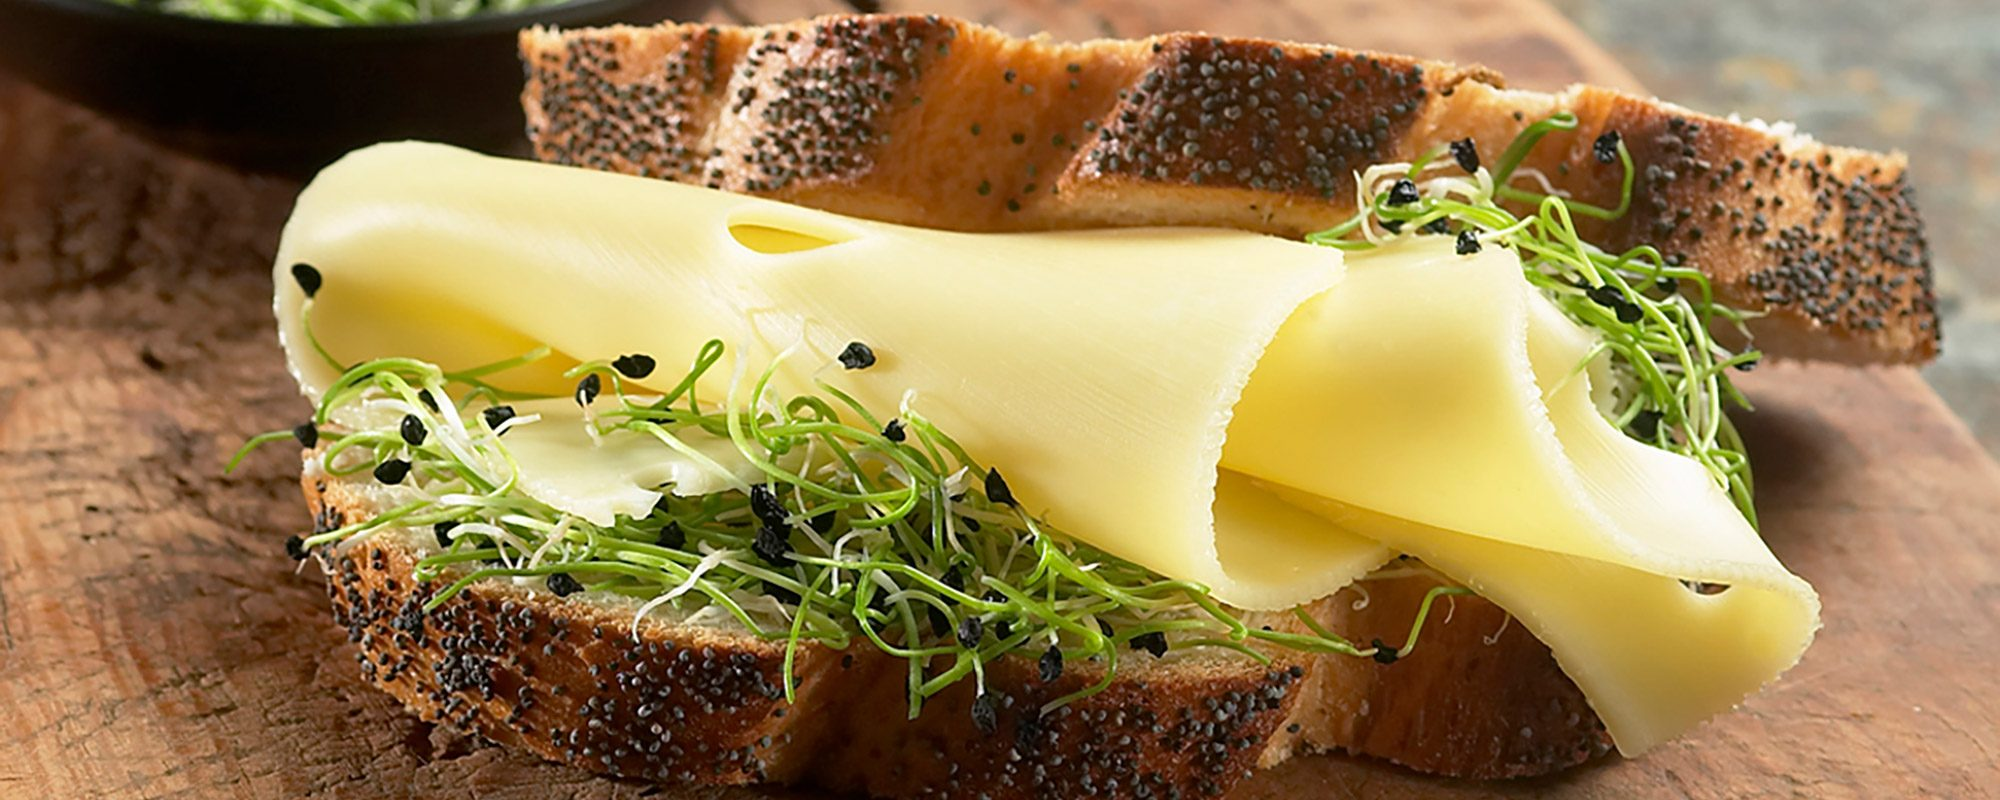 Cheese sandwich with Garlic Chives